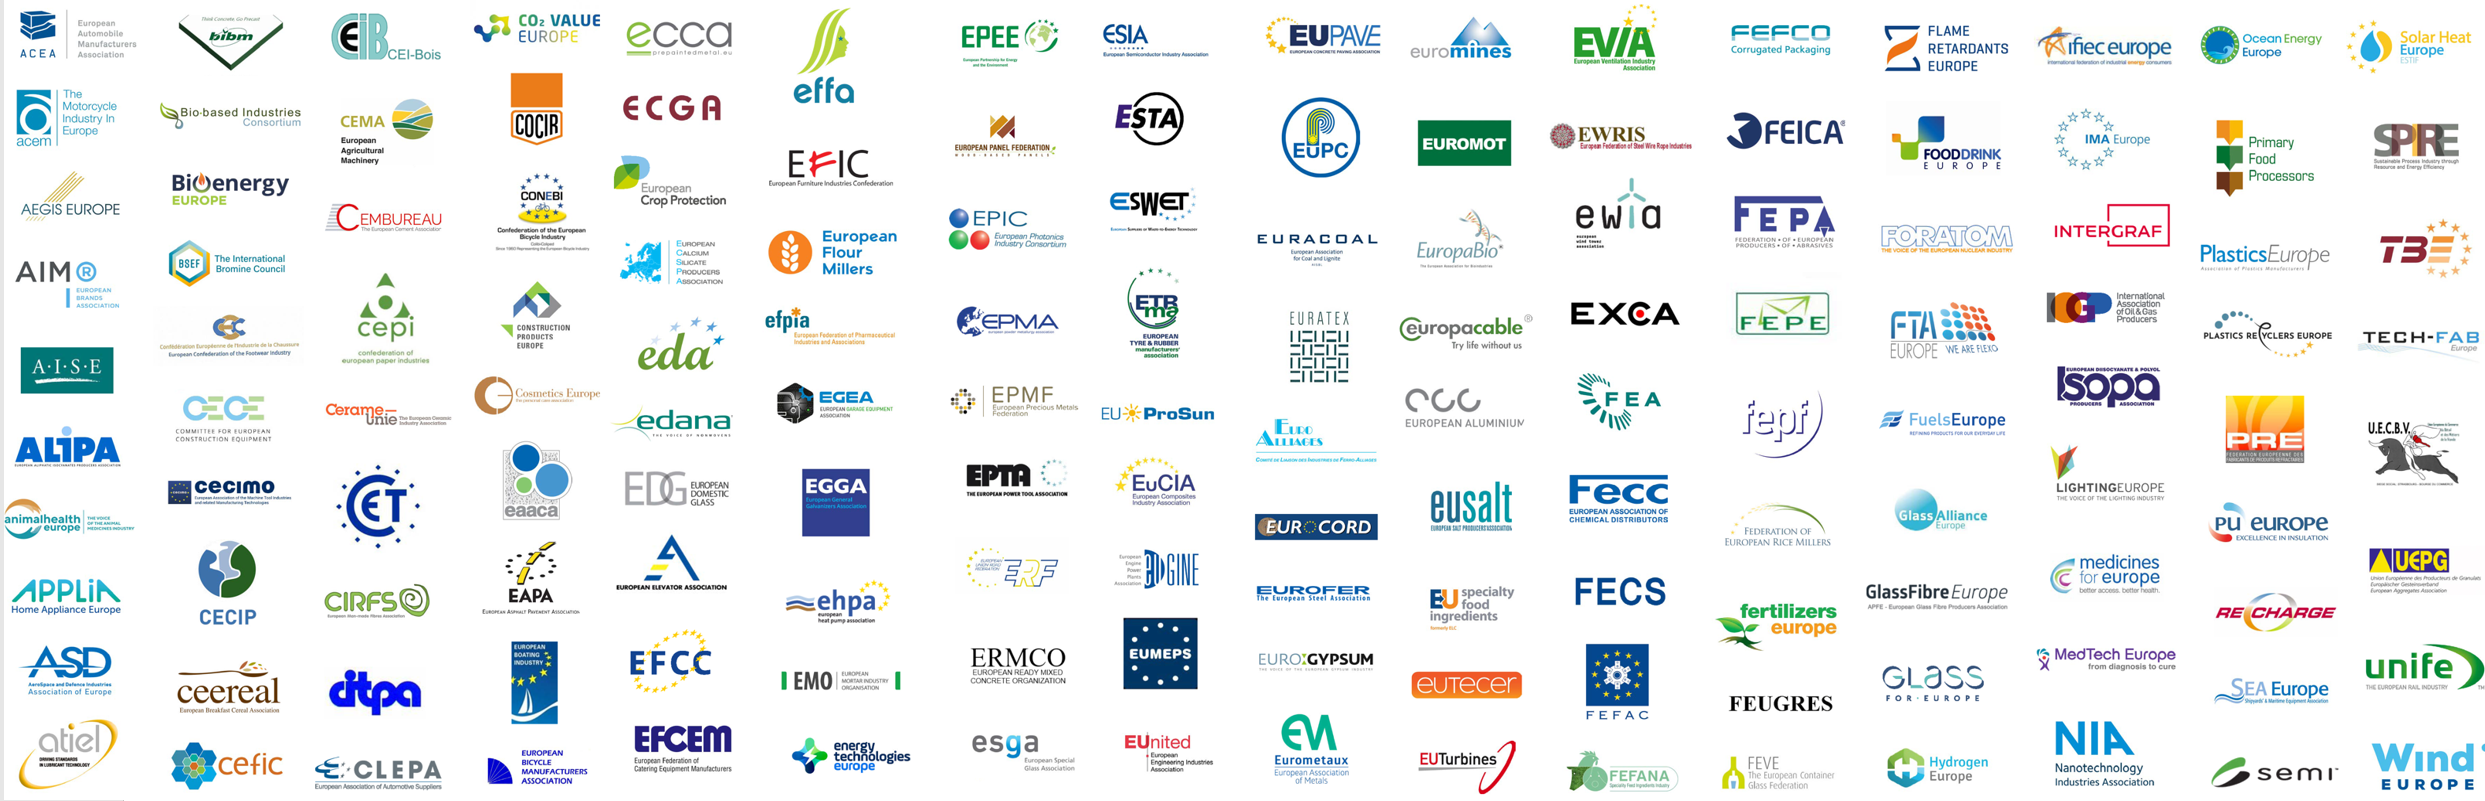 Image with logos of all Signatories